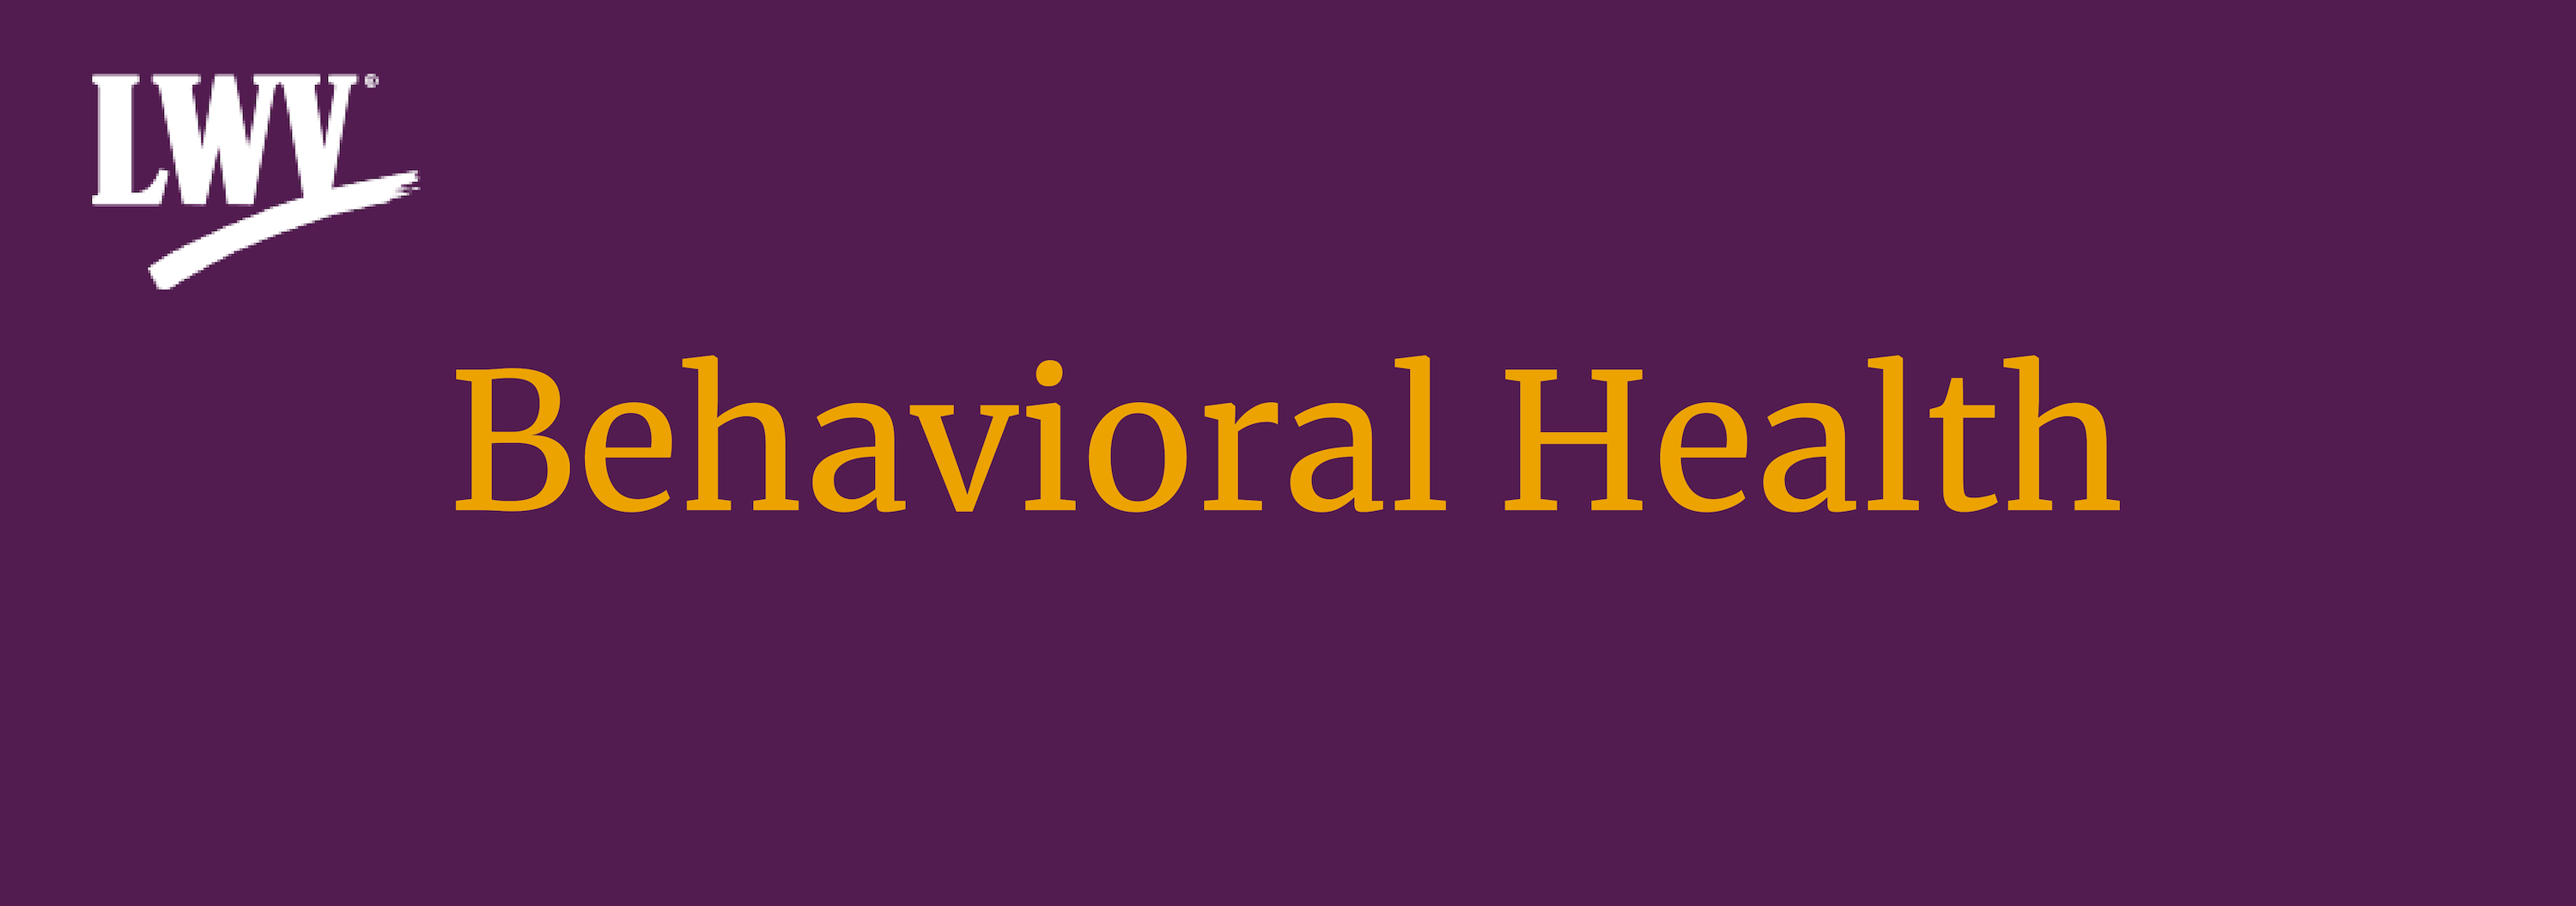 Behavioral Health graphic